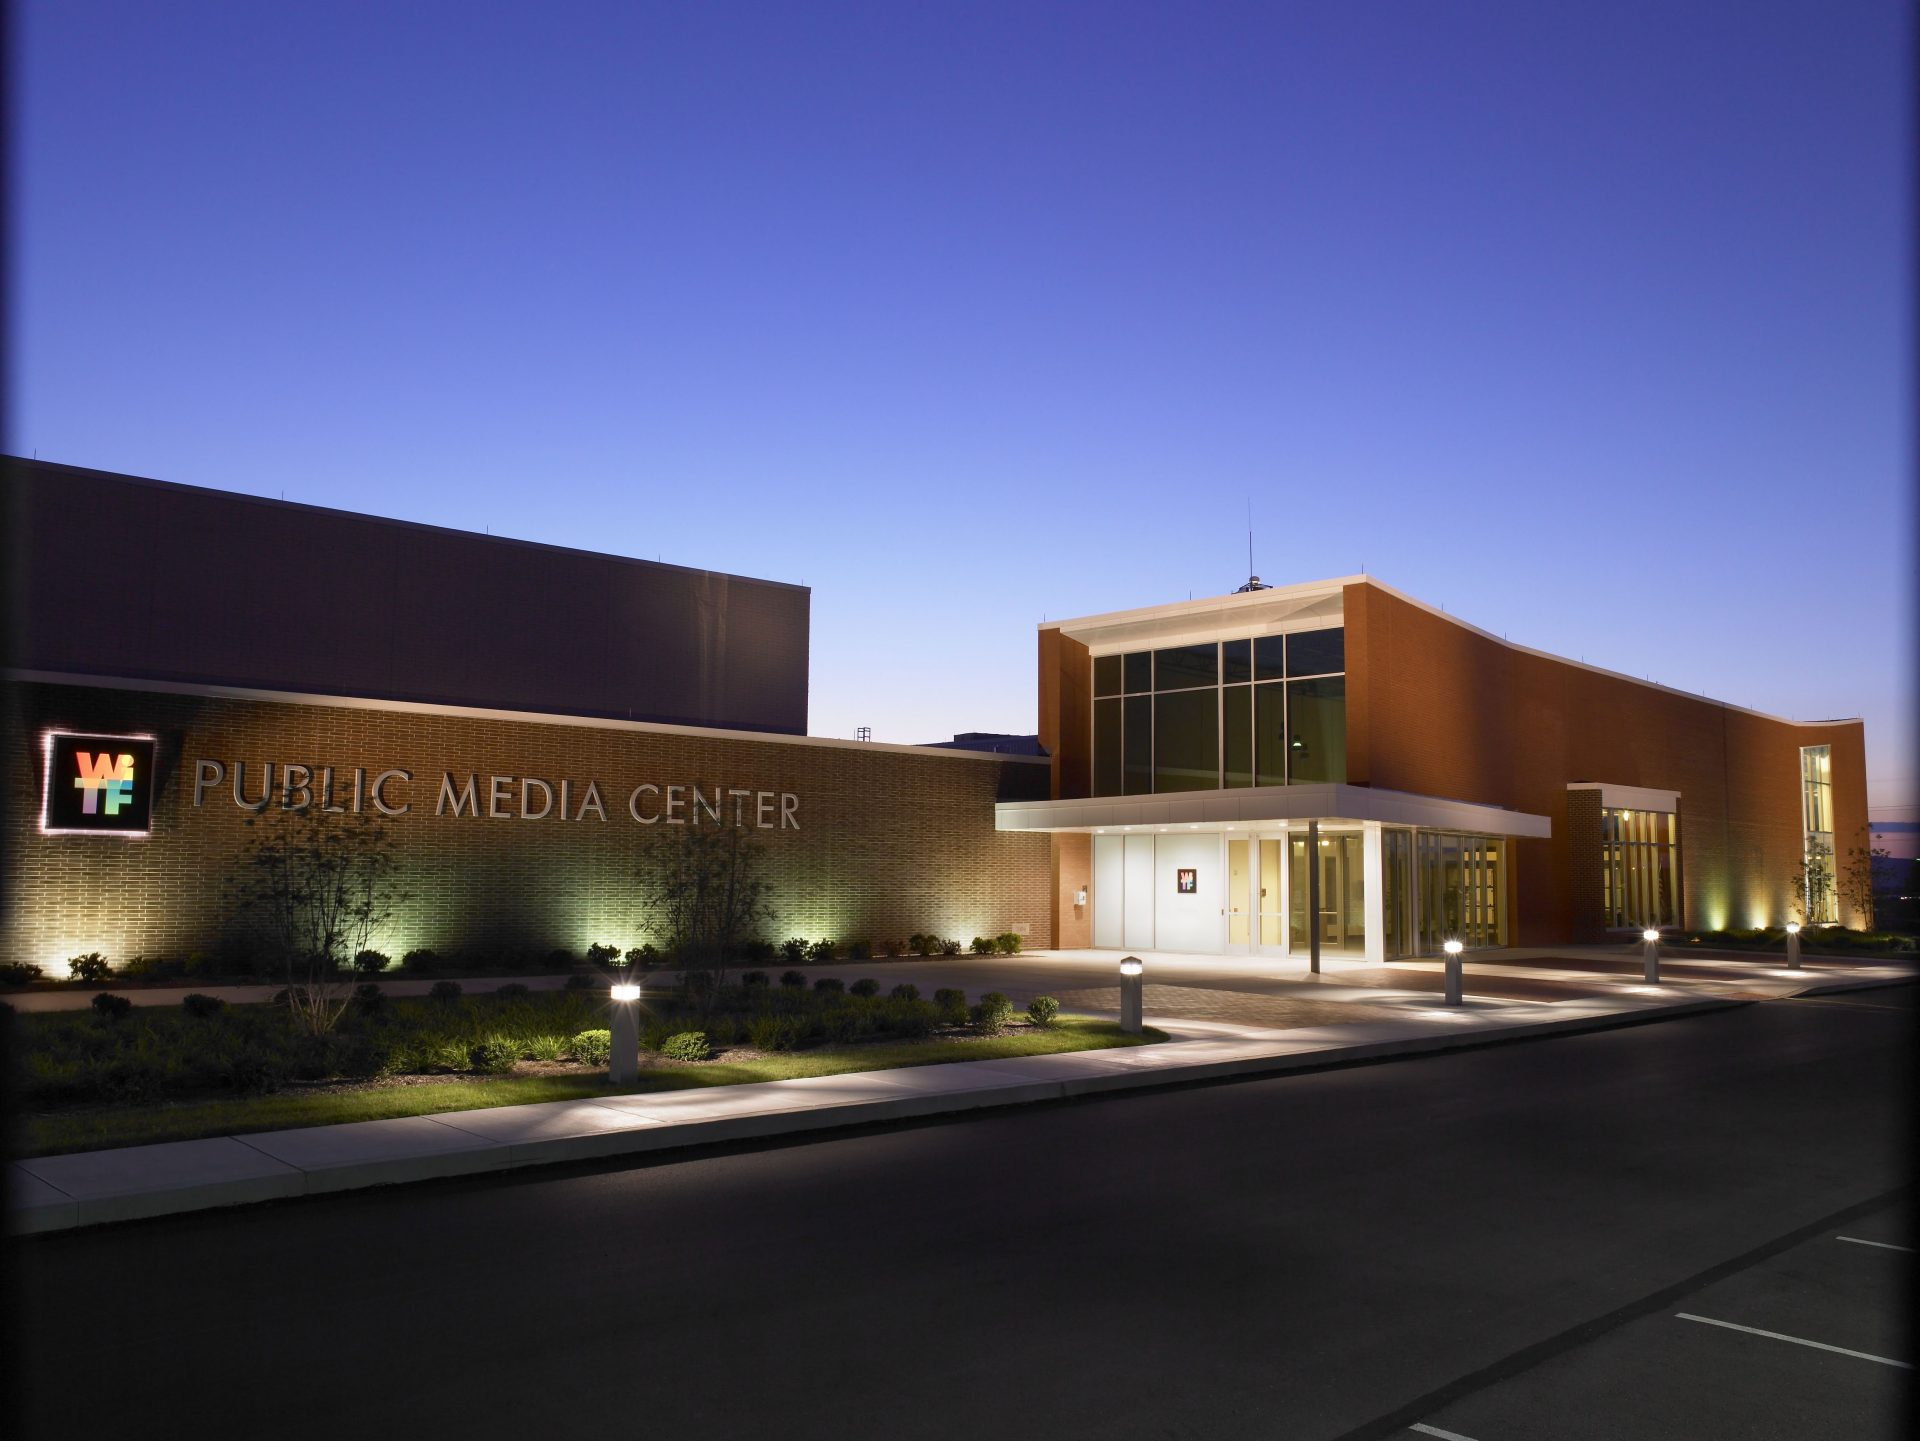 WITF's Public Media Center in Swatara Township, Dauphin County. Staff moved into the new building in November 2006.